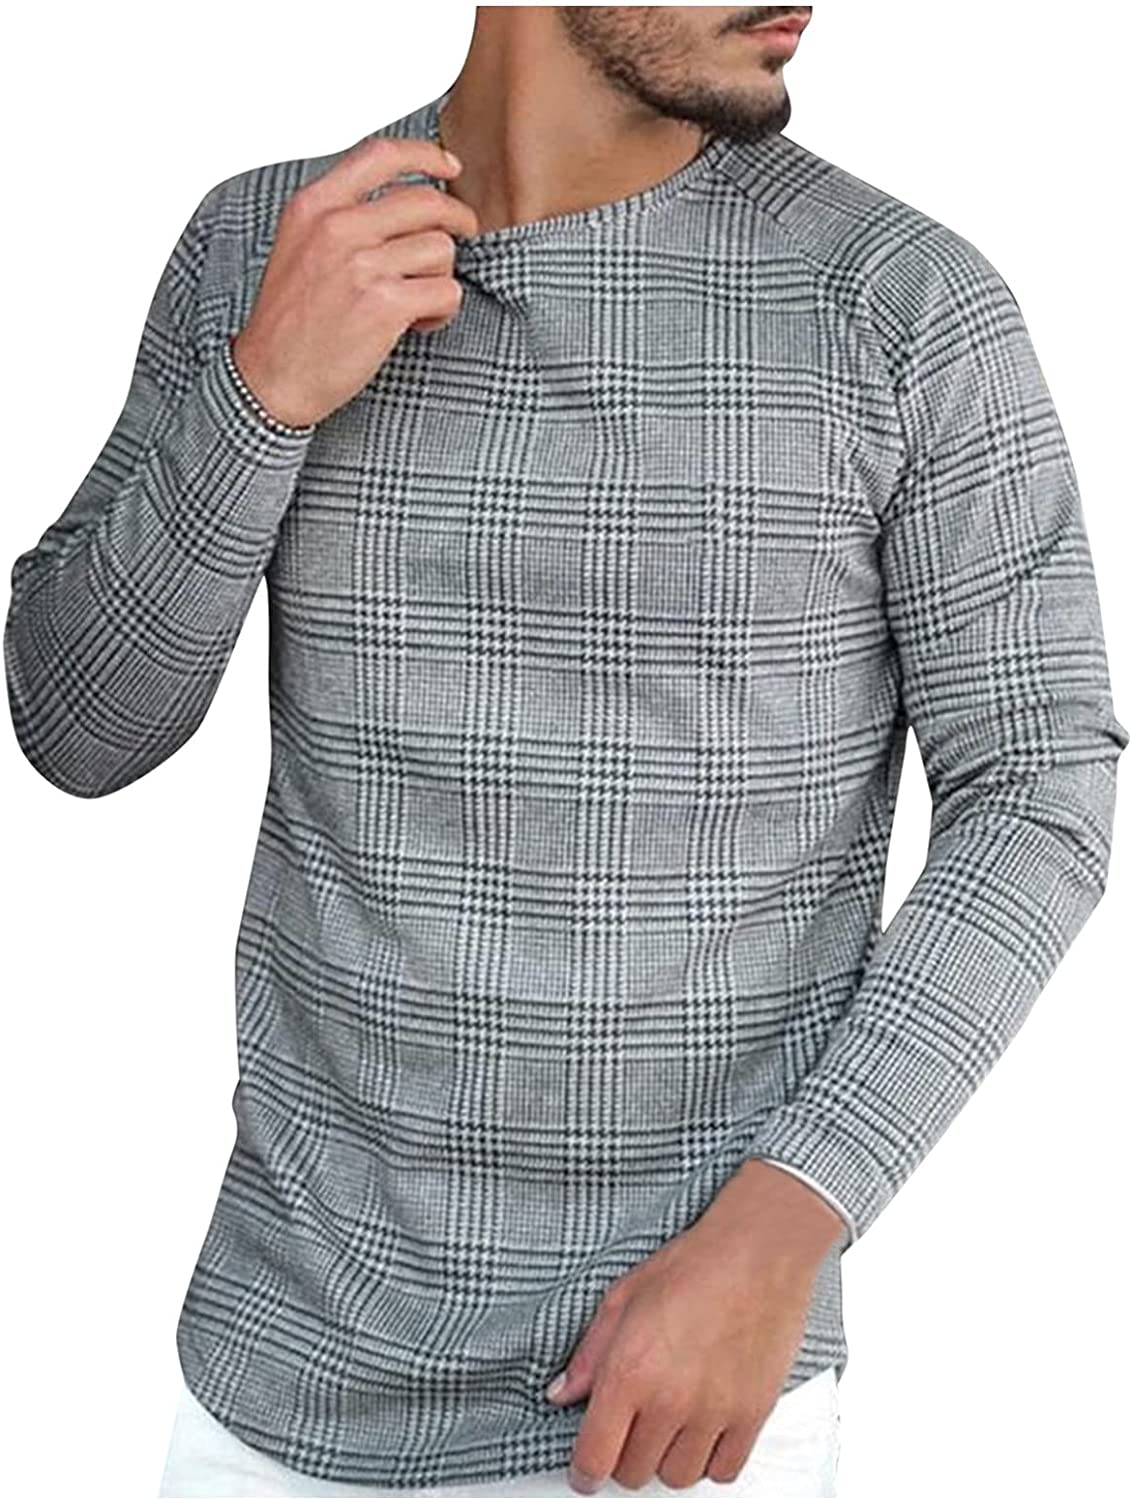 xoxing Shirts for Men Casual Autumn Plus Size Plaid Striped Print Long Sleeve Crew Neck Loose T-Shirt Blouse Pullovers